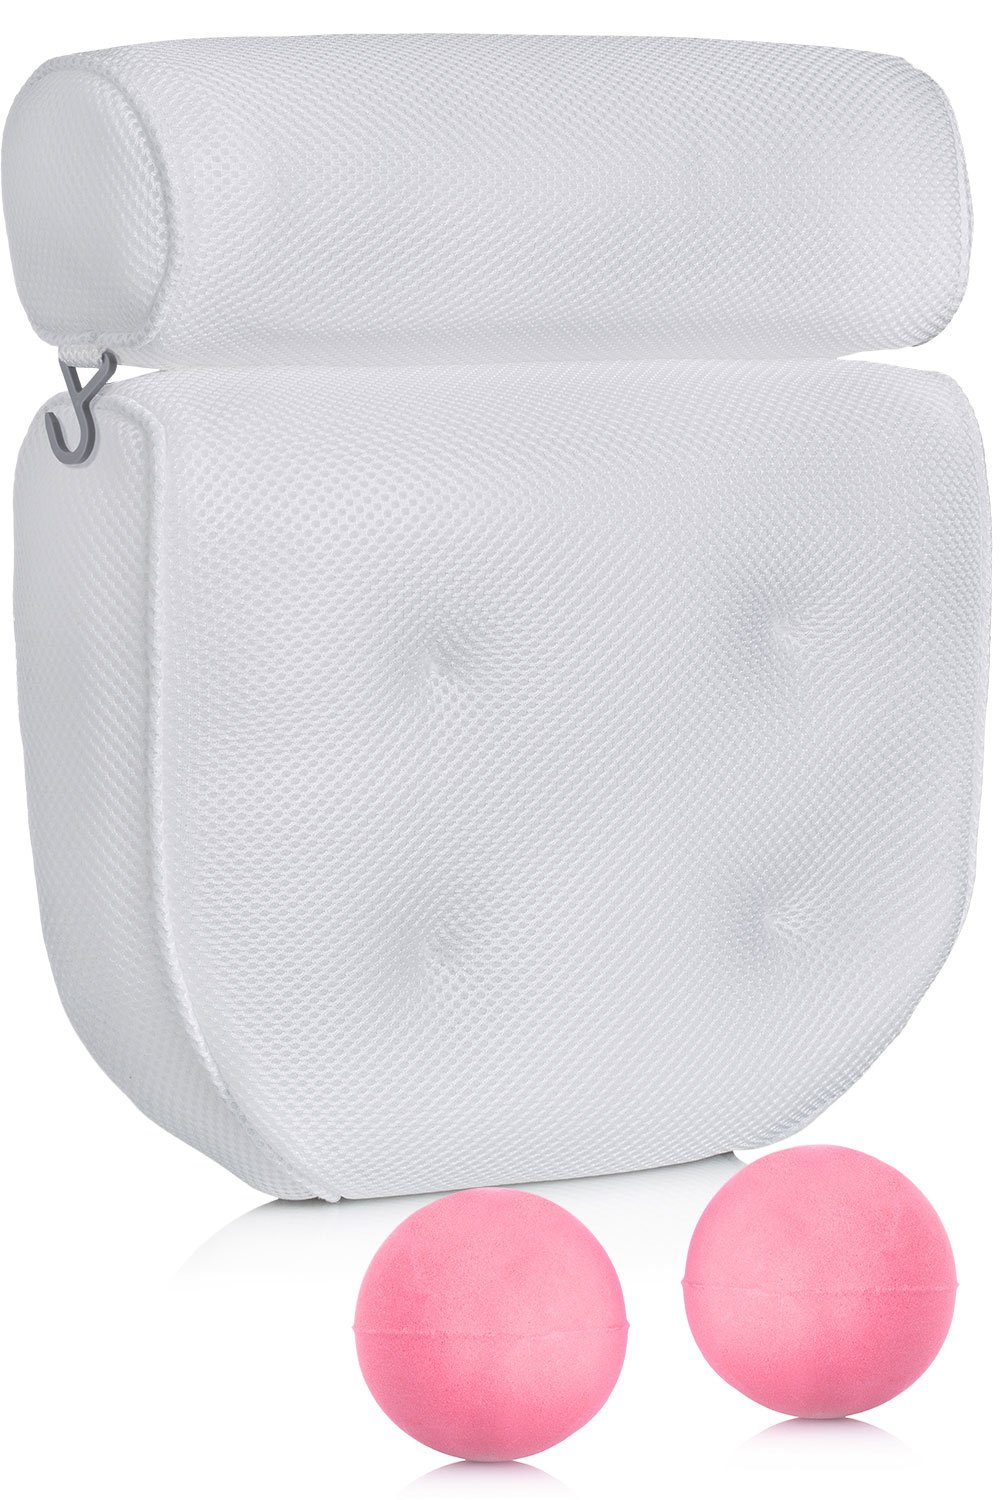 Dr. Maya Spa Bath Pillow + 2 Bonus Bath Bombs SET - 14'' x 13'', 4'' Thick – Home Jacuzzi Hot Tub – Luxury Mesh Cushion – Non Slip Large Suction Cups - for Back, Neck and Head Support in the Bathtub